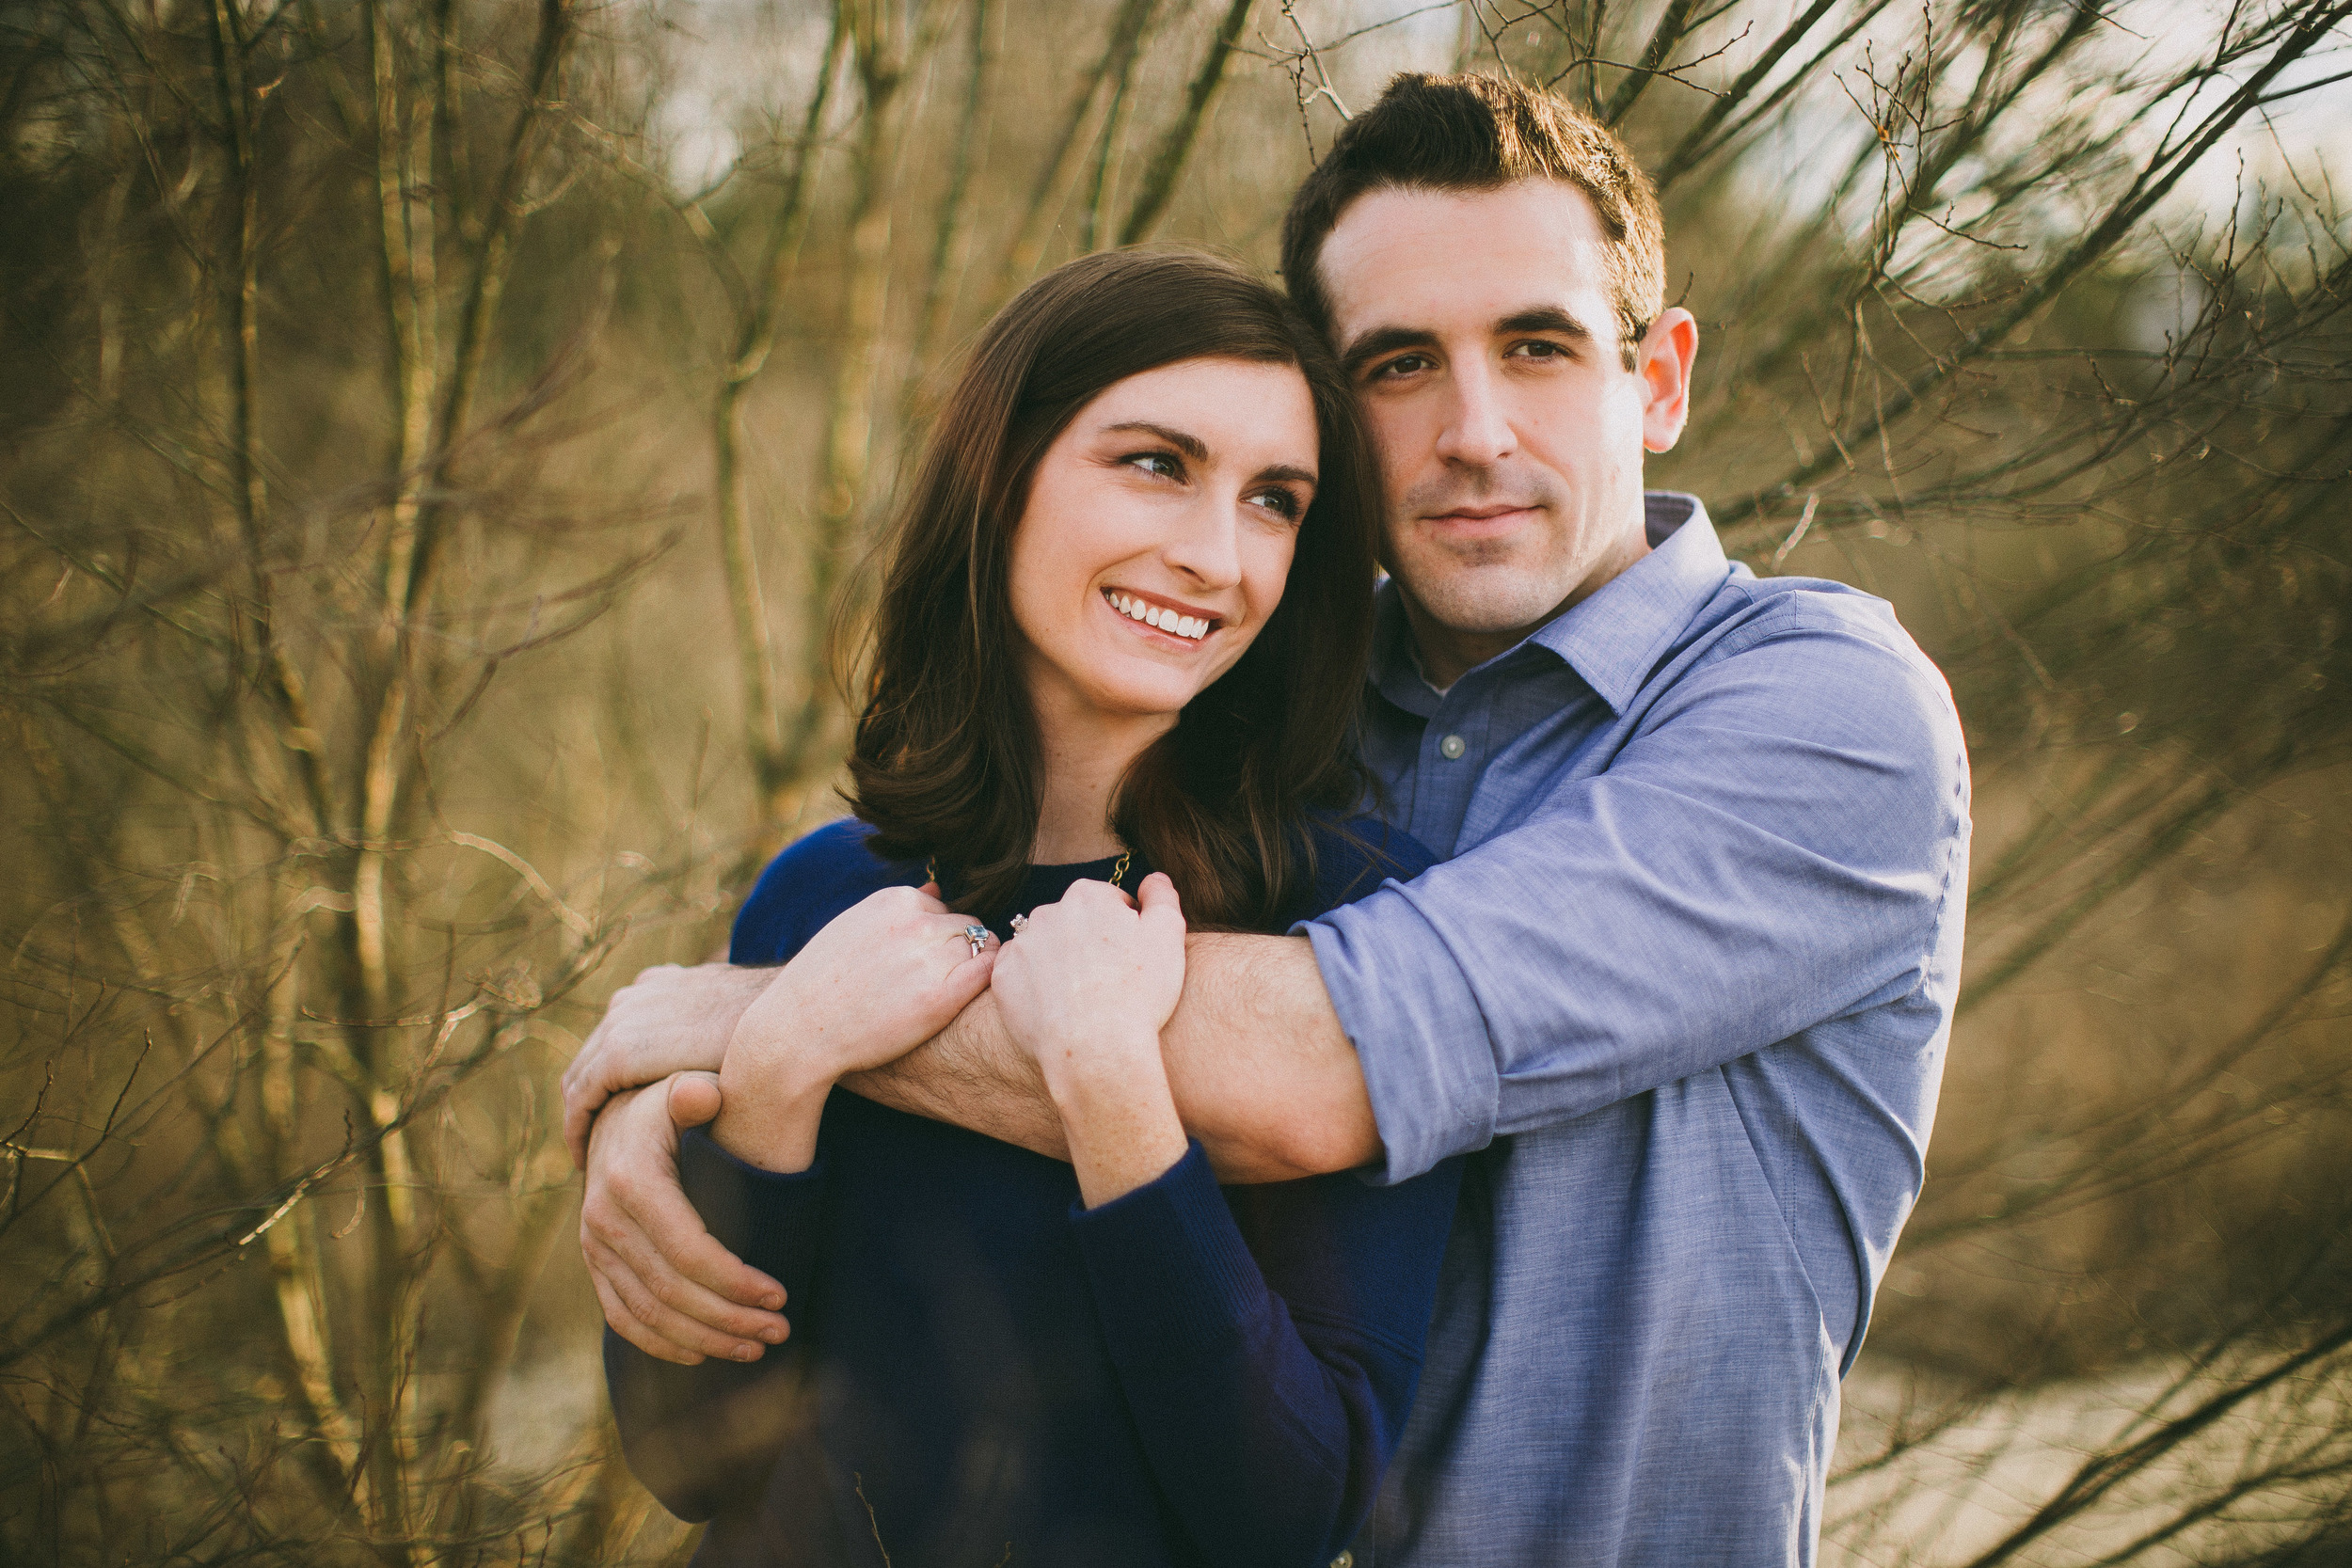 haliejohnsonphotography-bowers-engagement-1.jpg